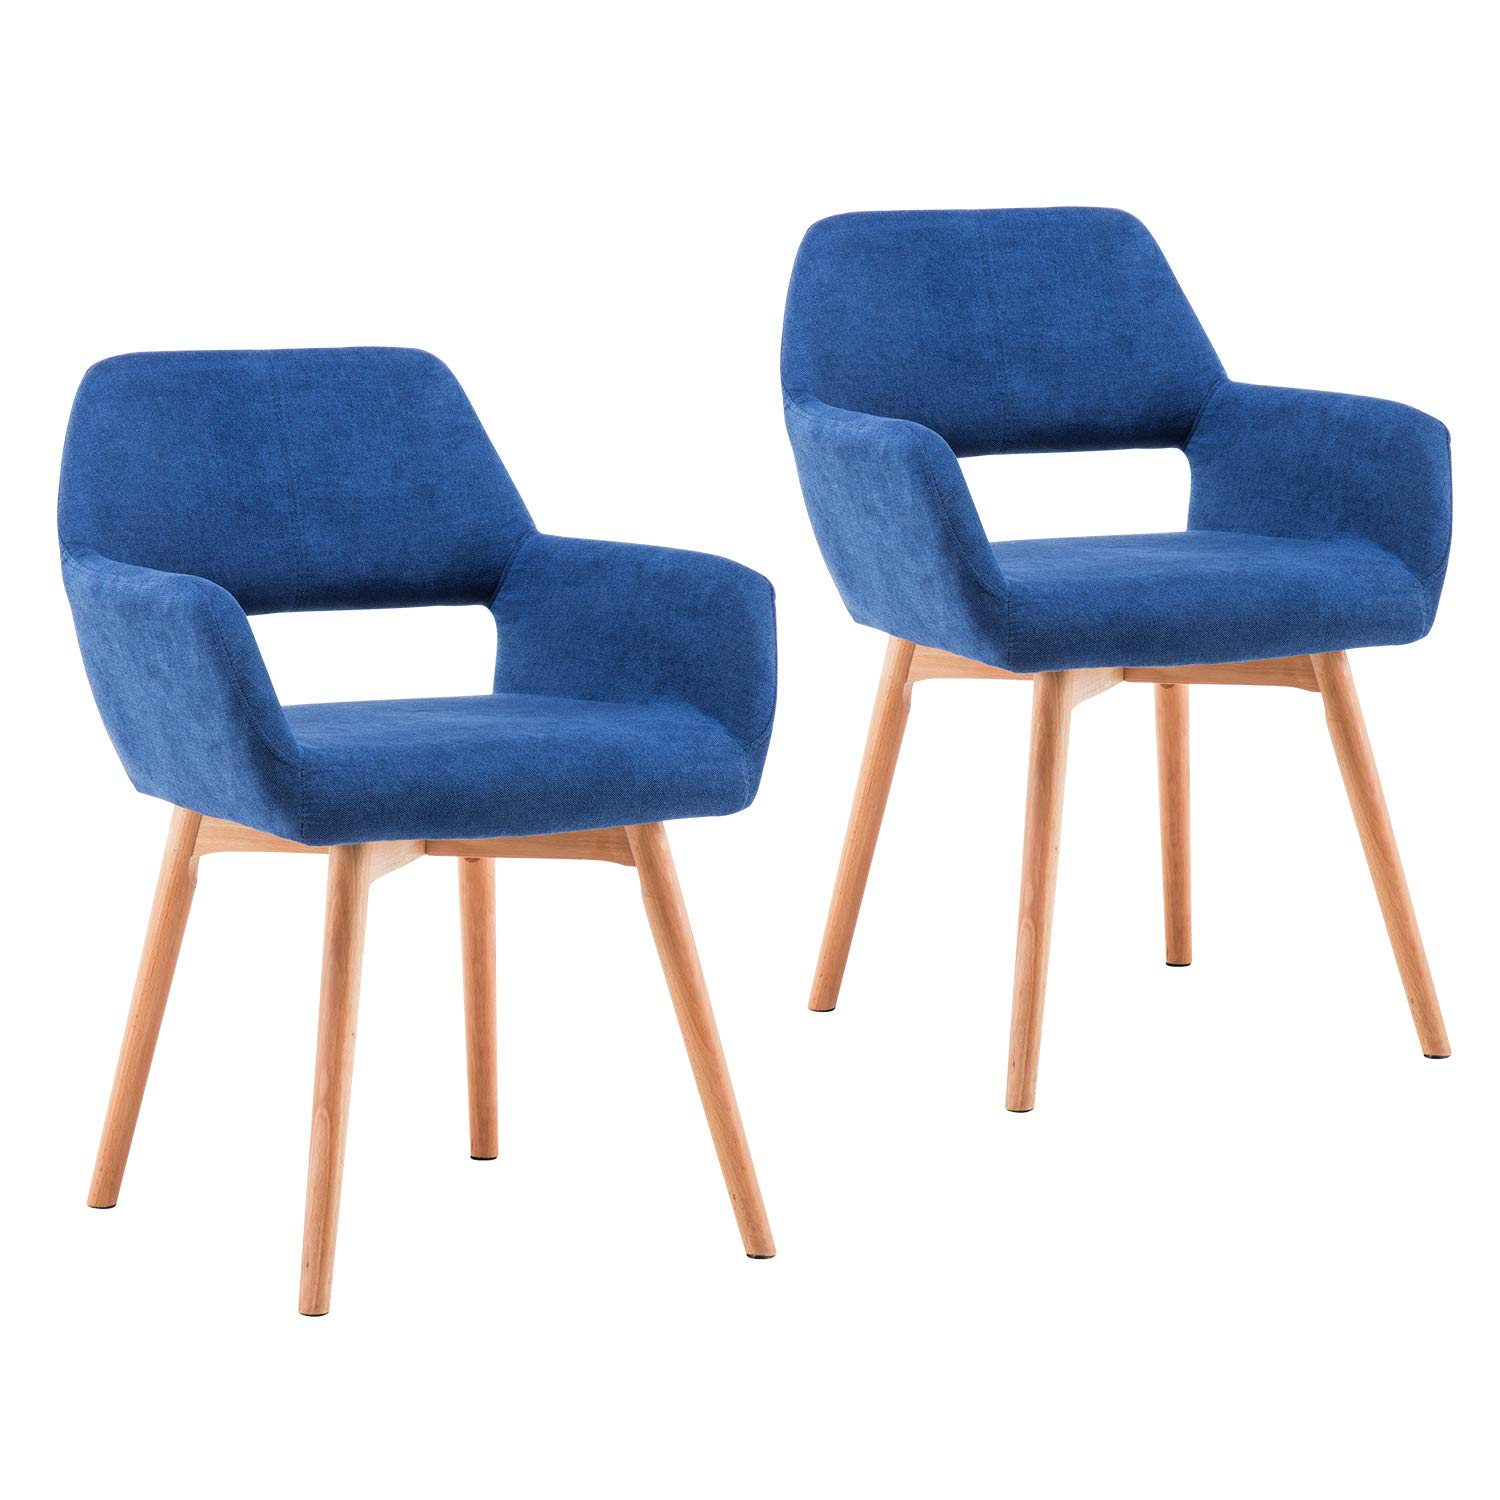 Homy Grigio Modern Living Dining Room Accent Arm Chairs Club Guest with Solid Wood Legs Set of 2,Blue